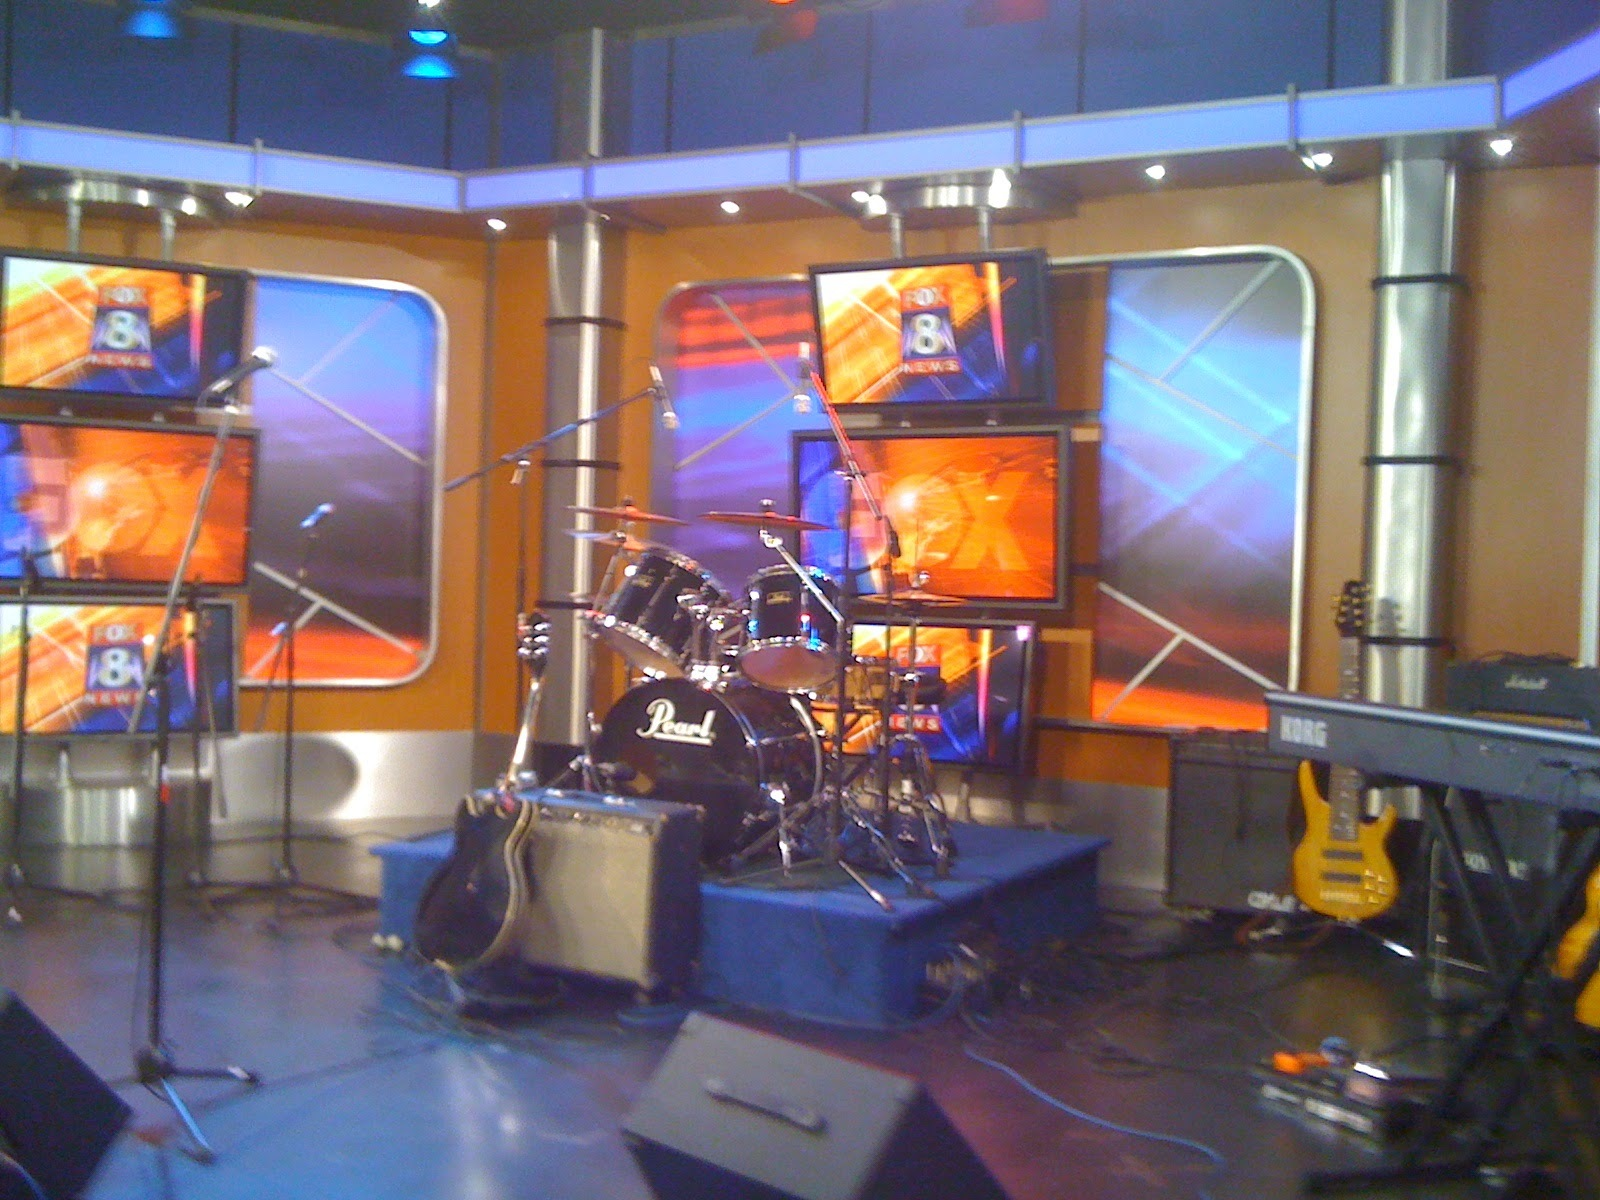 2009 - Morning Show